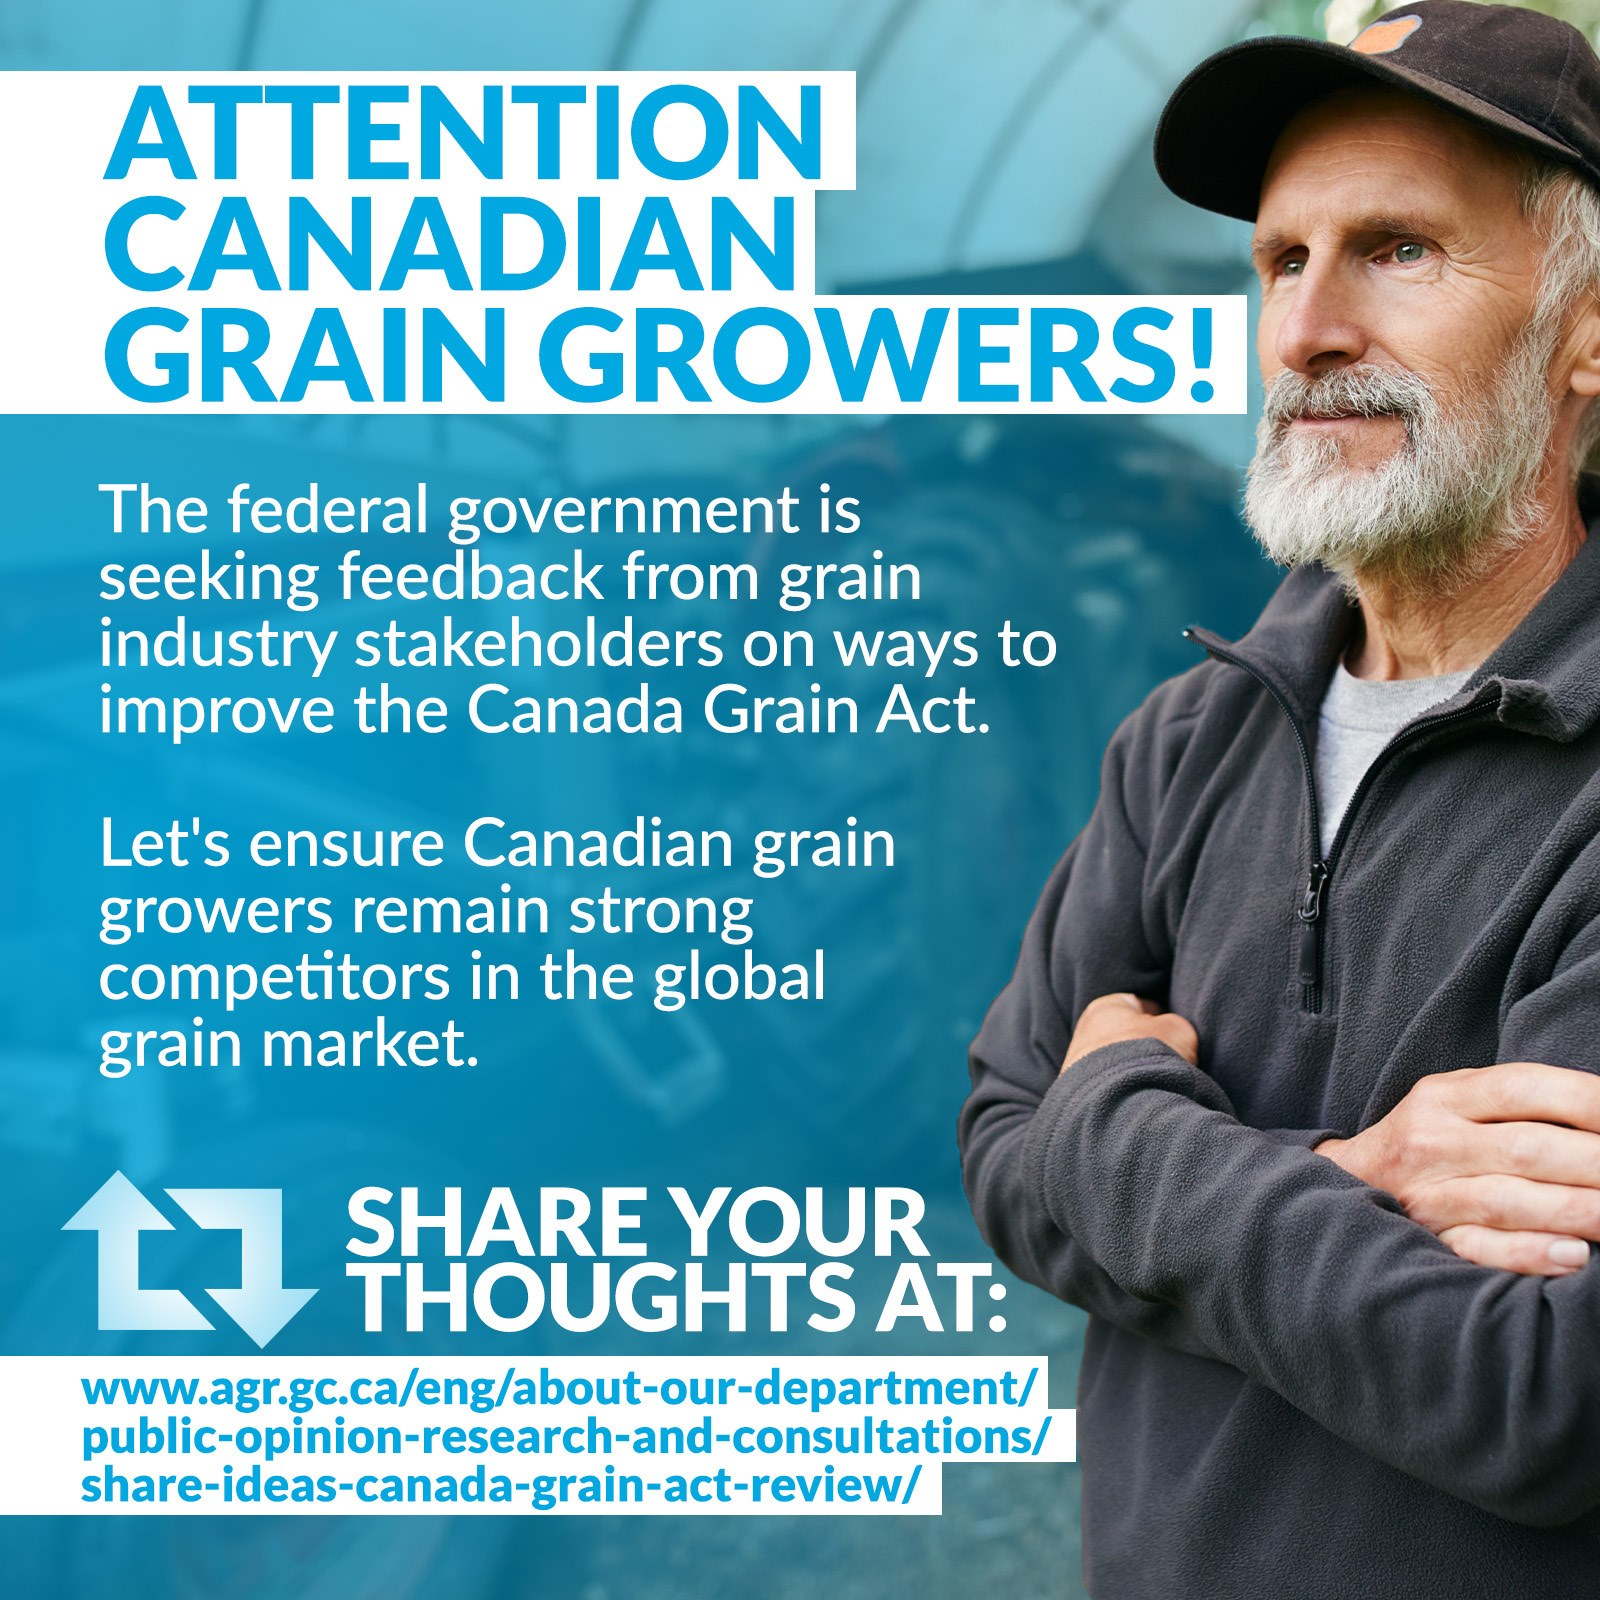 Have your say on the Canada Grain Act